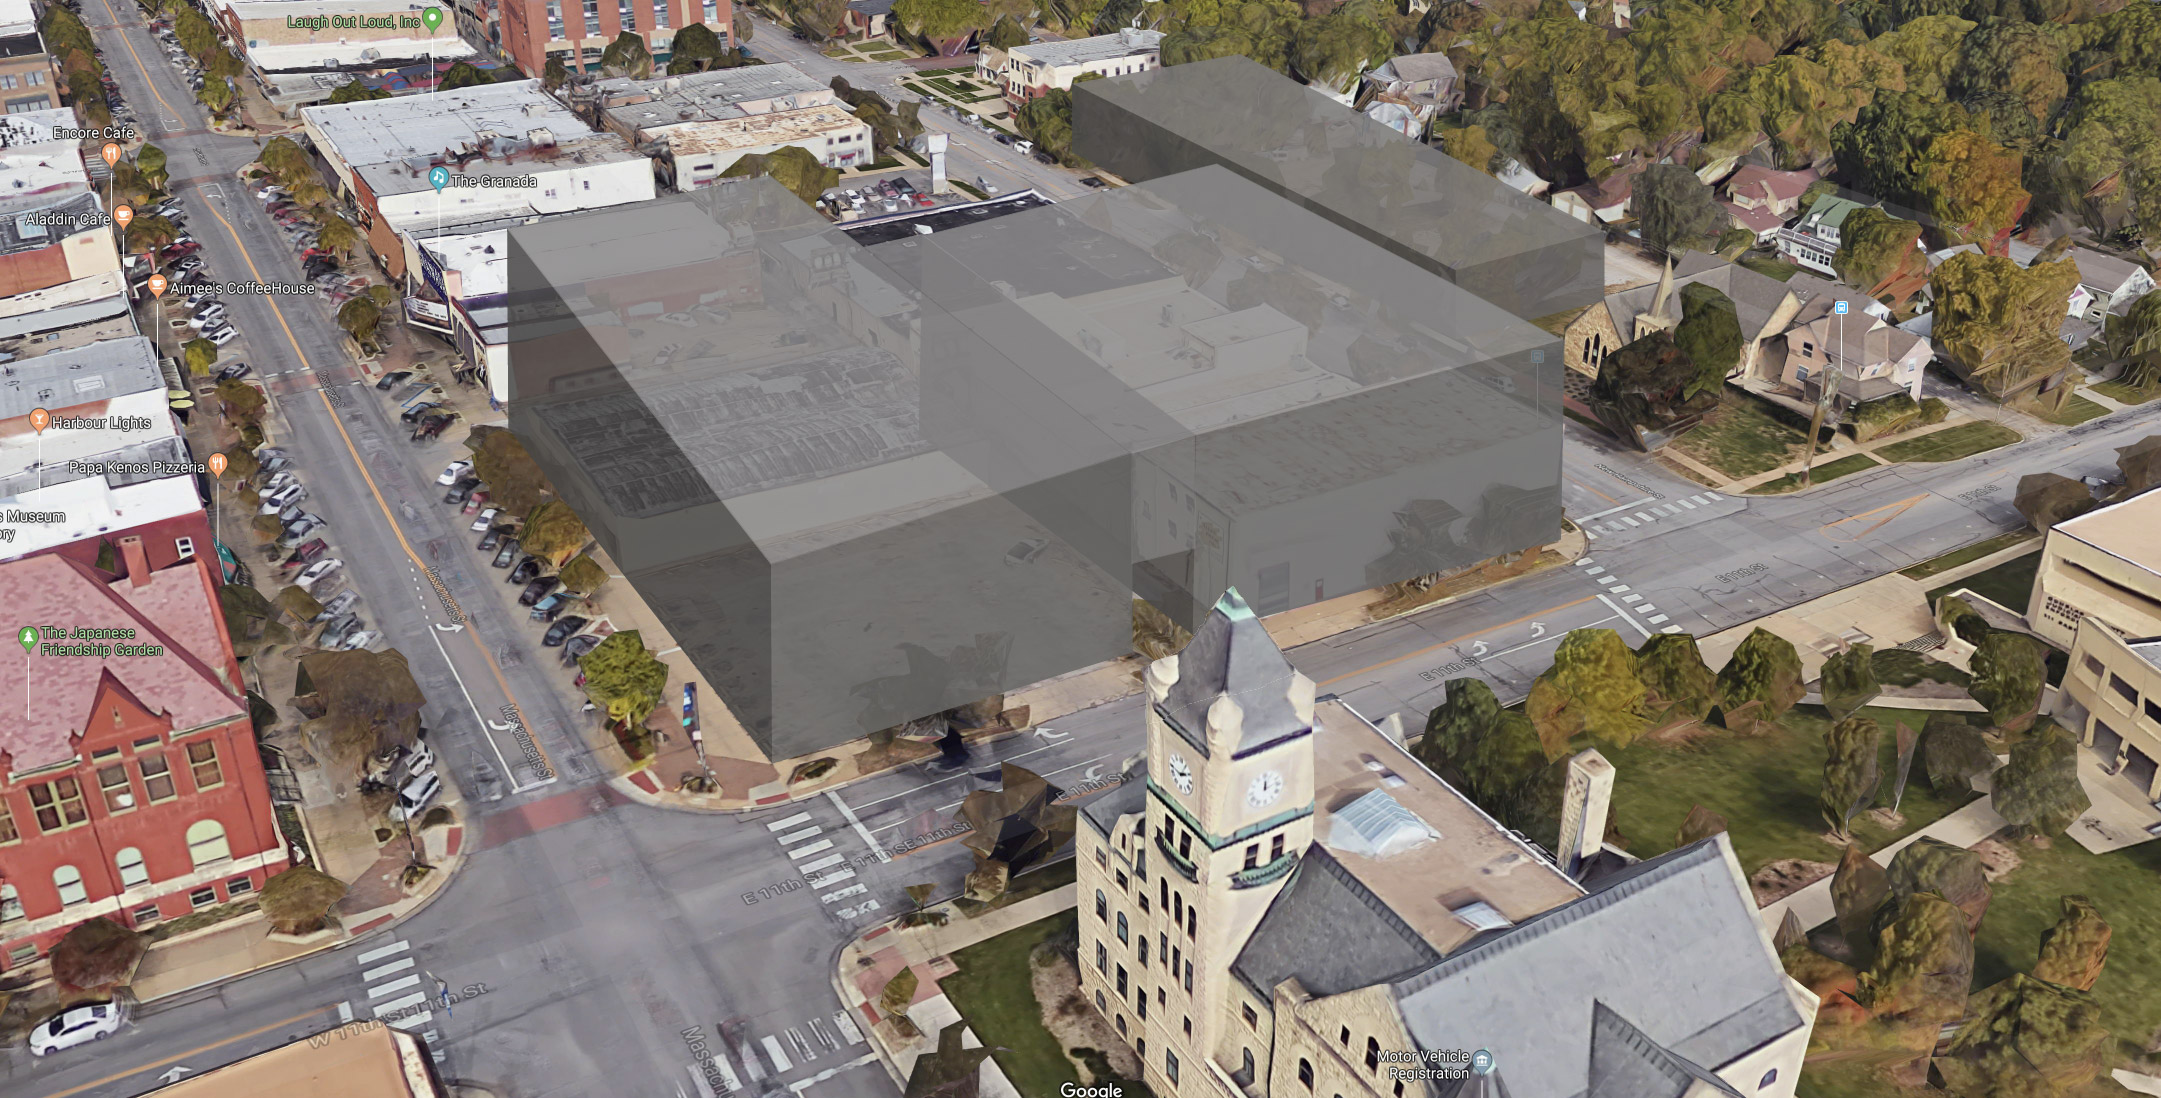 This photo illustration was prepared by LPA to show the approximate size and mass of the proposed HUB project and its relationship to Massachusetts St., the surrounding buildings, and nearby historic properties like the Watkins Museum (lower left), the Douglas County Courthouse (lower center) and the Old English Lutheran Church (upper right, adjacent to the proposed HUB parking garage on New Hampshire St.).